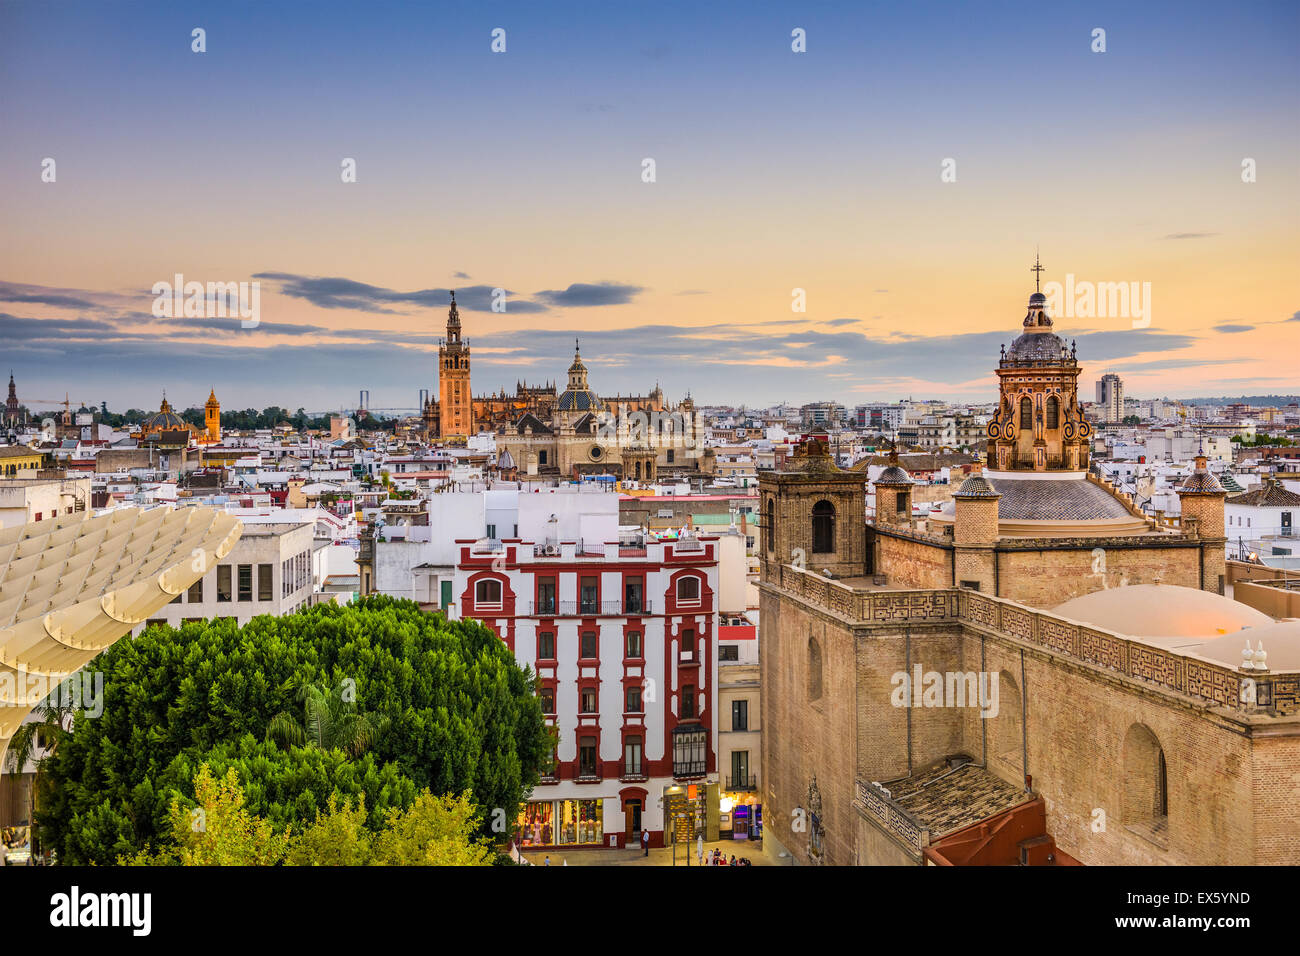 Seville, Spain old town skyline. - Stock Image